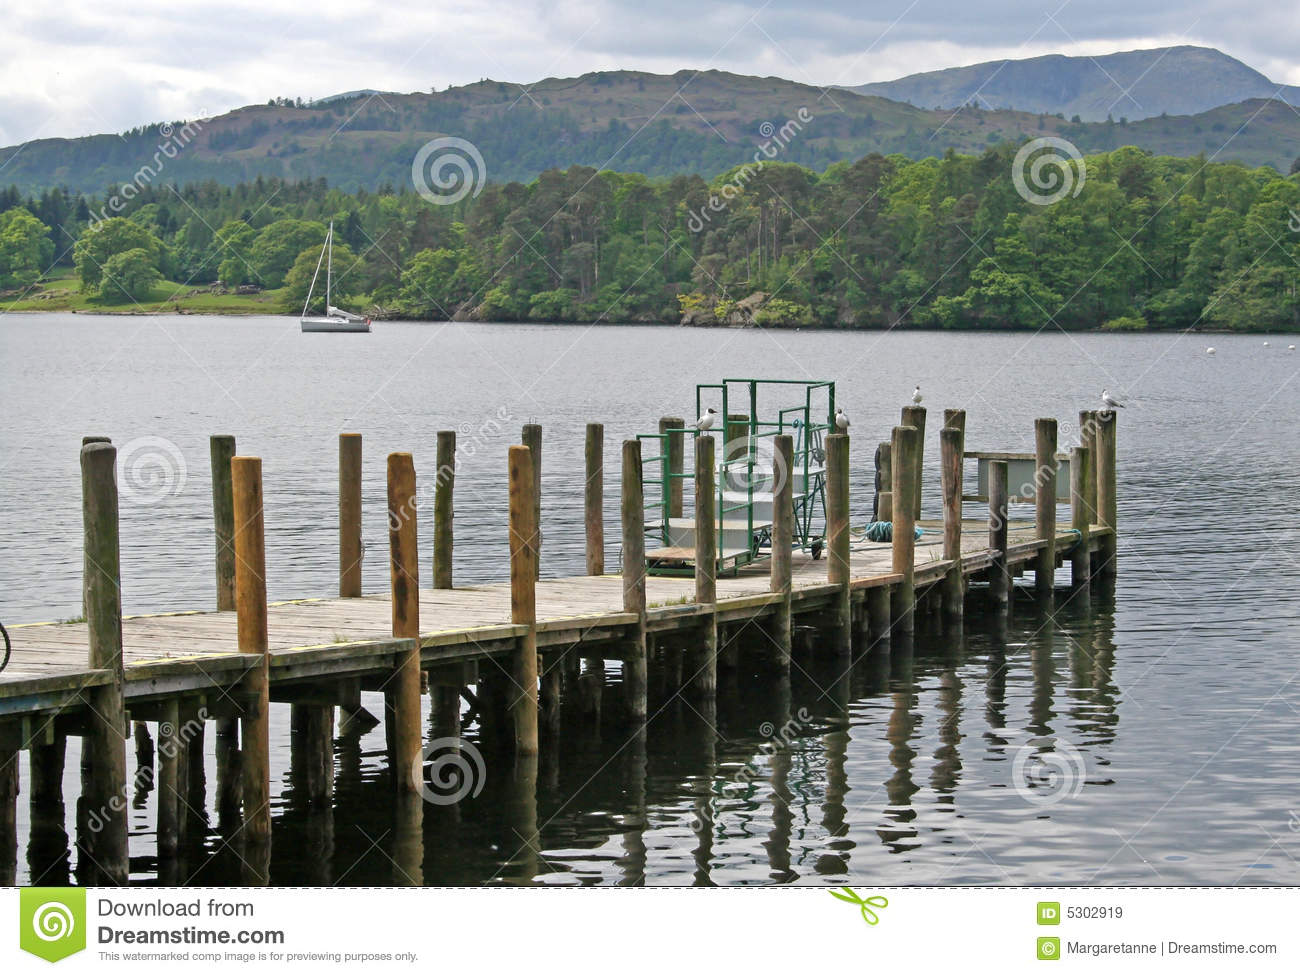 Download Molo in Windermere immagine stock. Immagine di inglese - 5302919